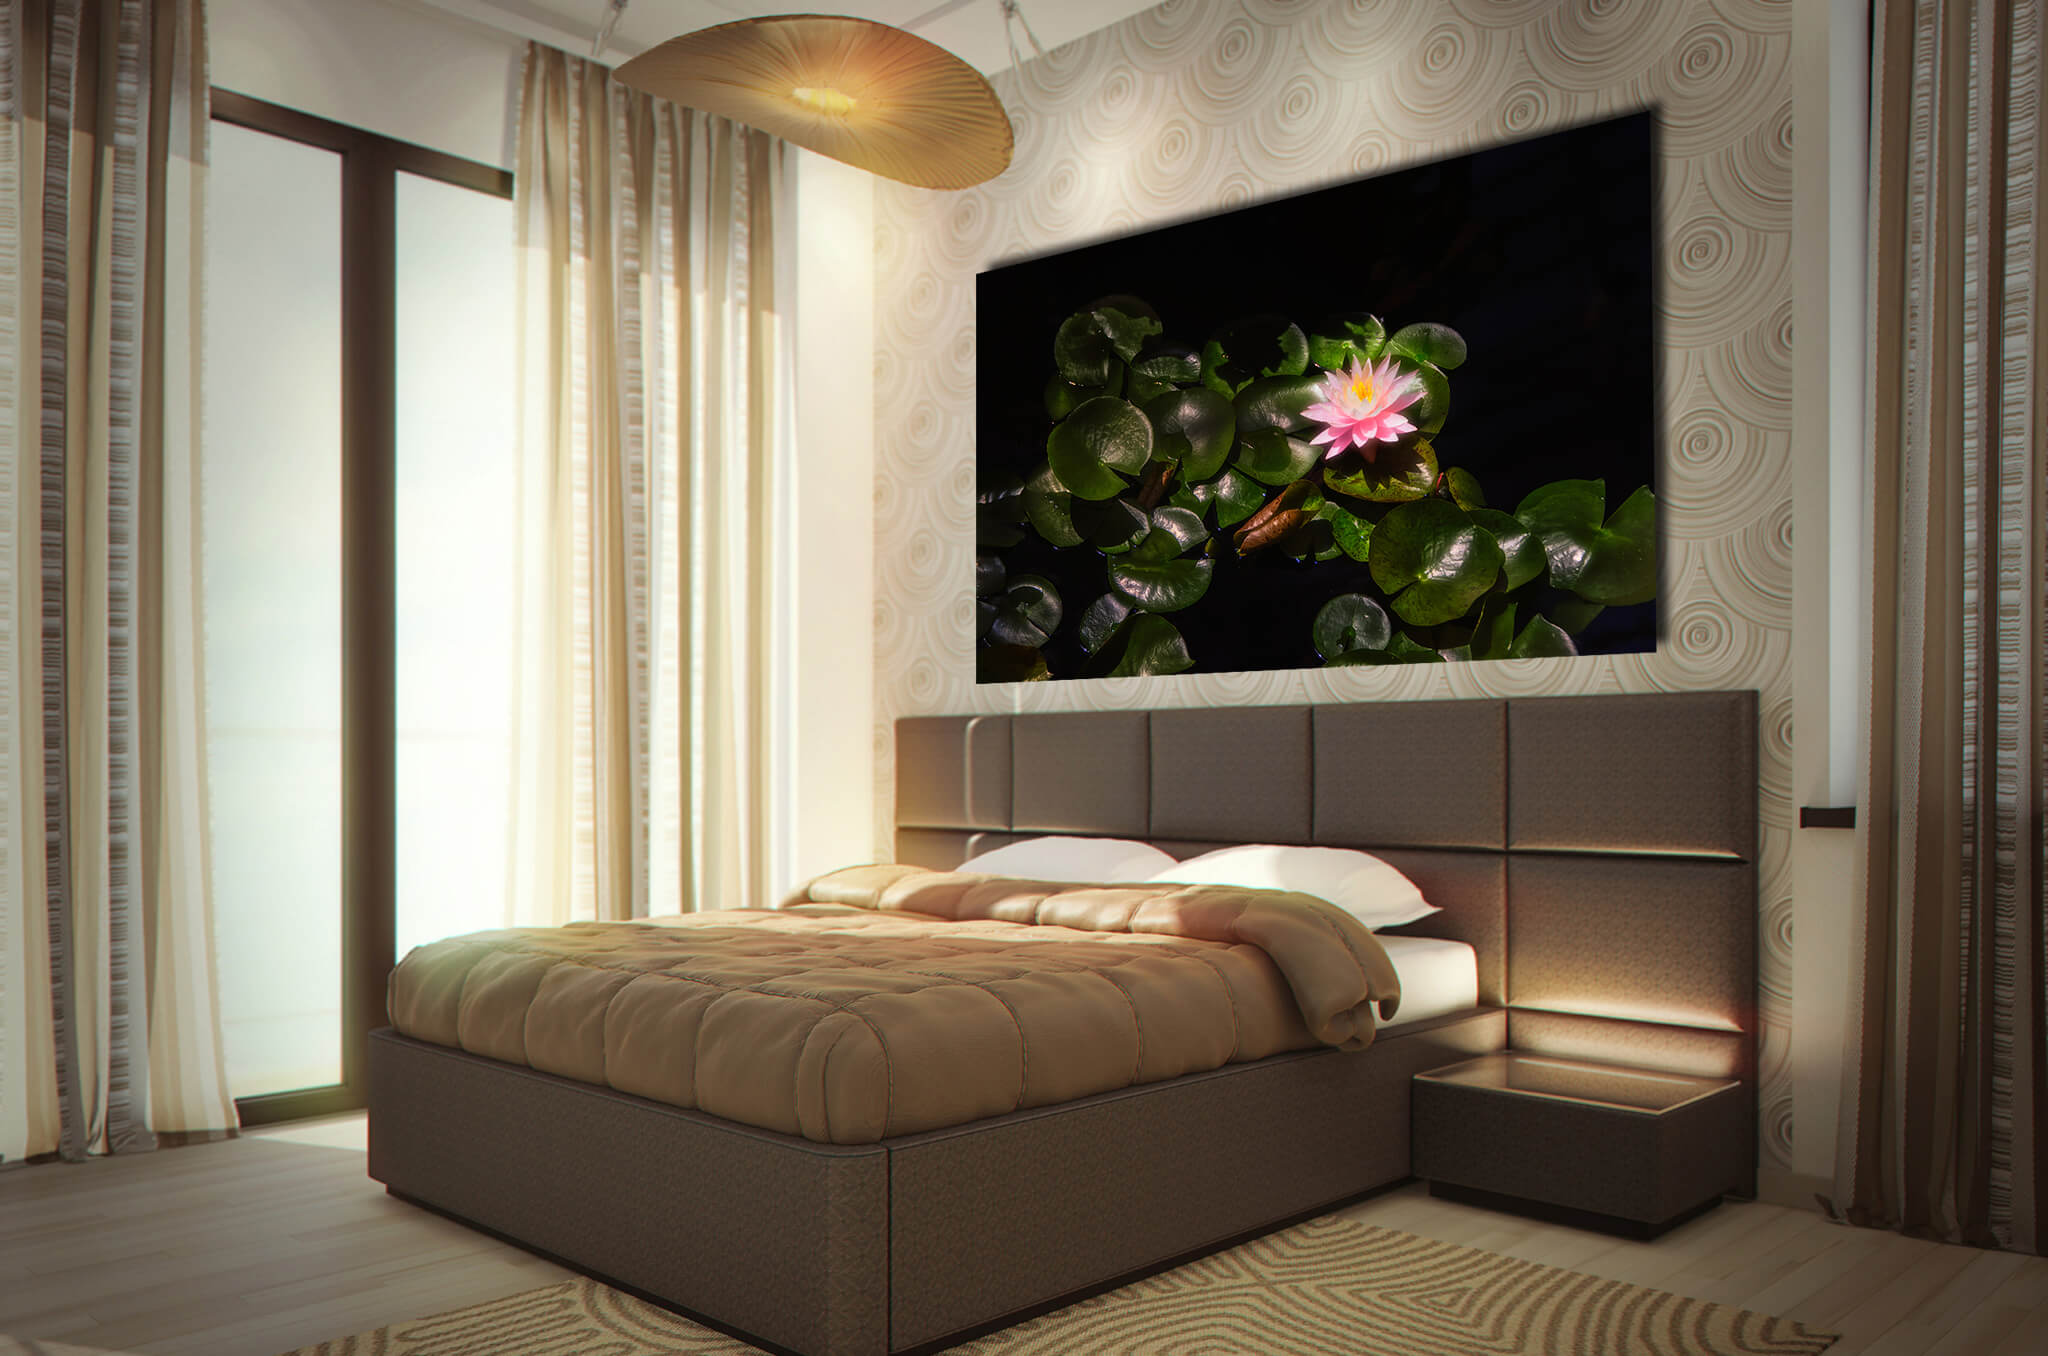 Bedroom Flower Art. Bedroom Wall Art   Art Ideas for Bedroom   Franklin Arts